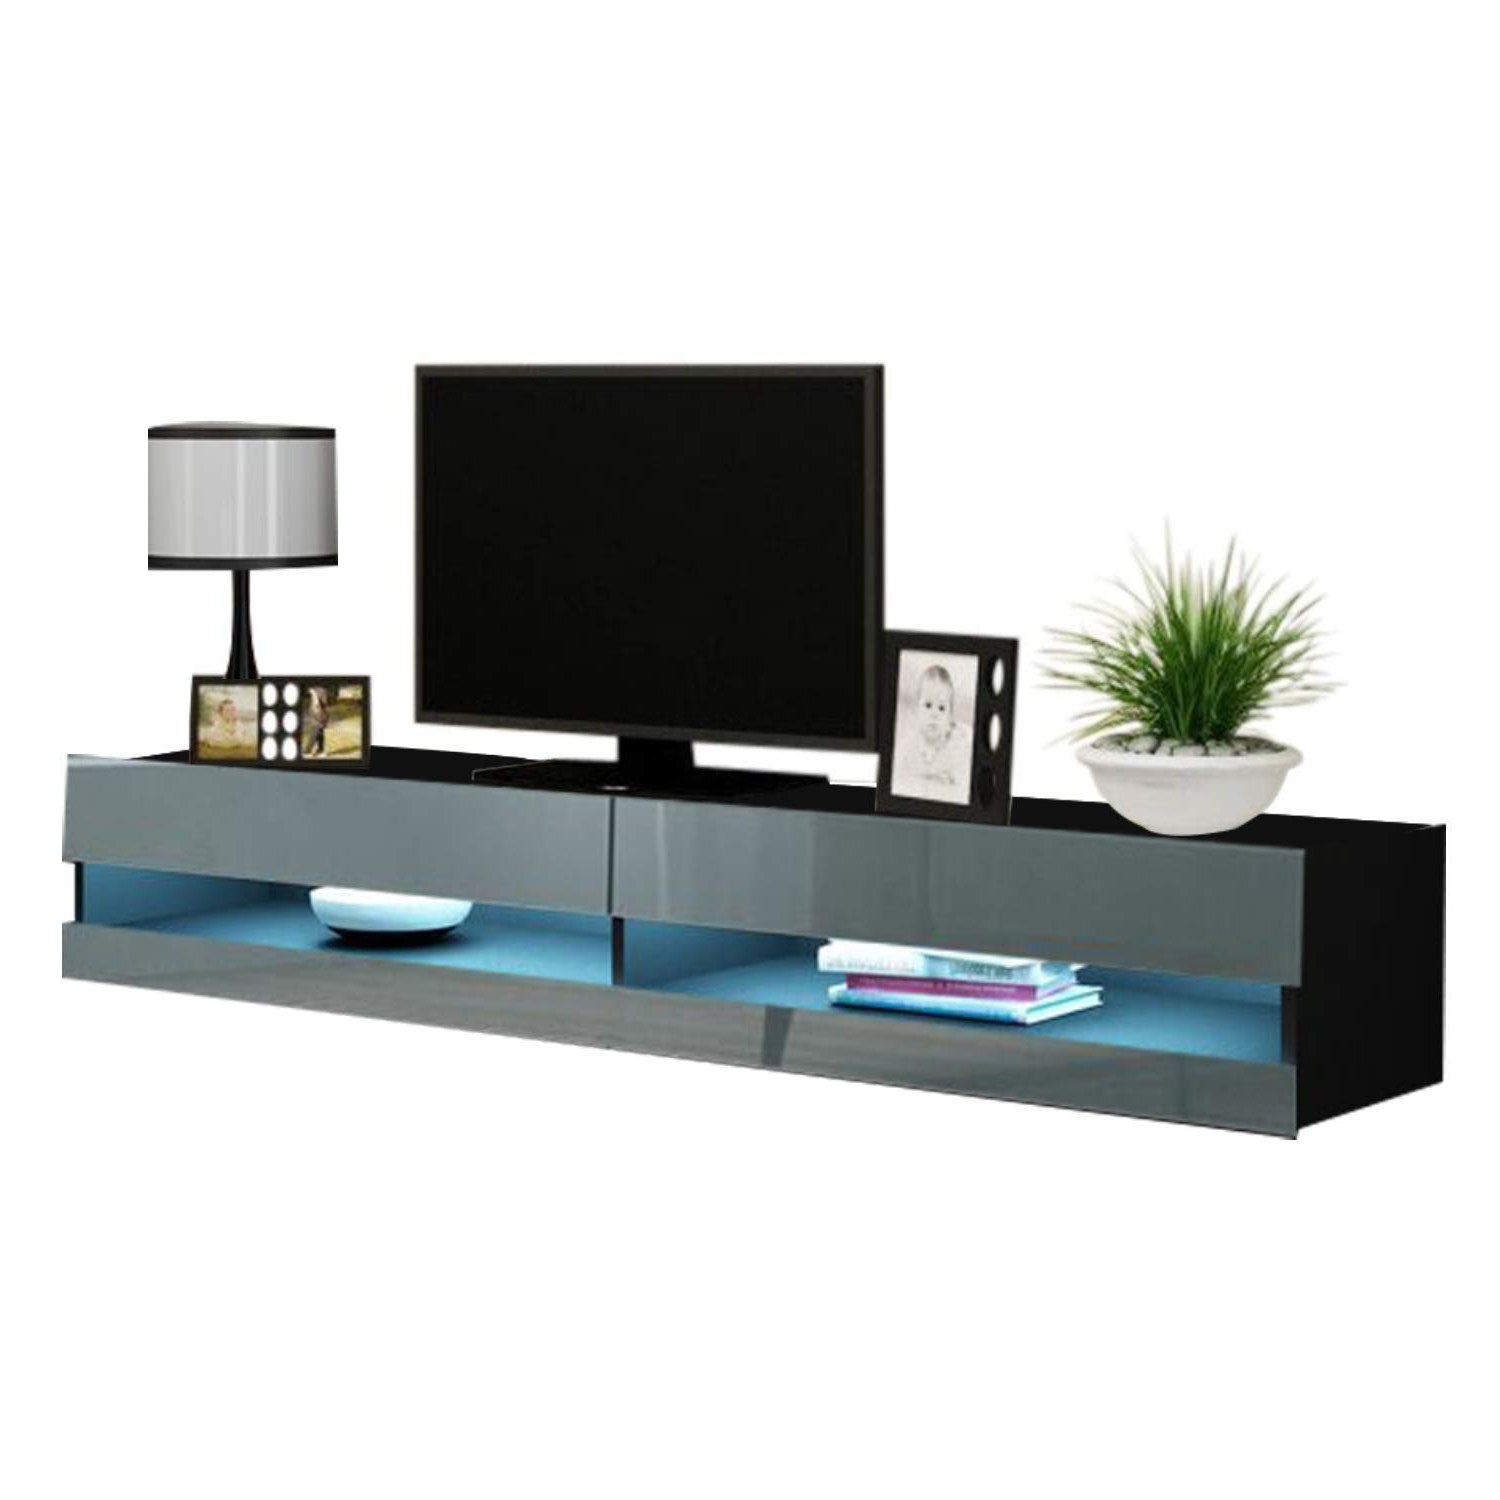 """Polar Led Tv Stands Intended For Latest Vigo New 180 Led Wall Mounted 71"""" Floating Tv Stand, Black (View 10 of 10)"""